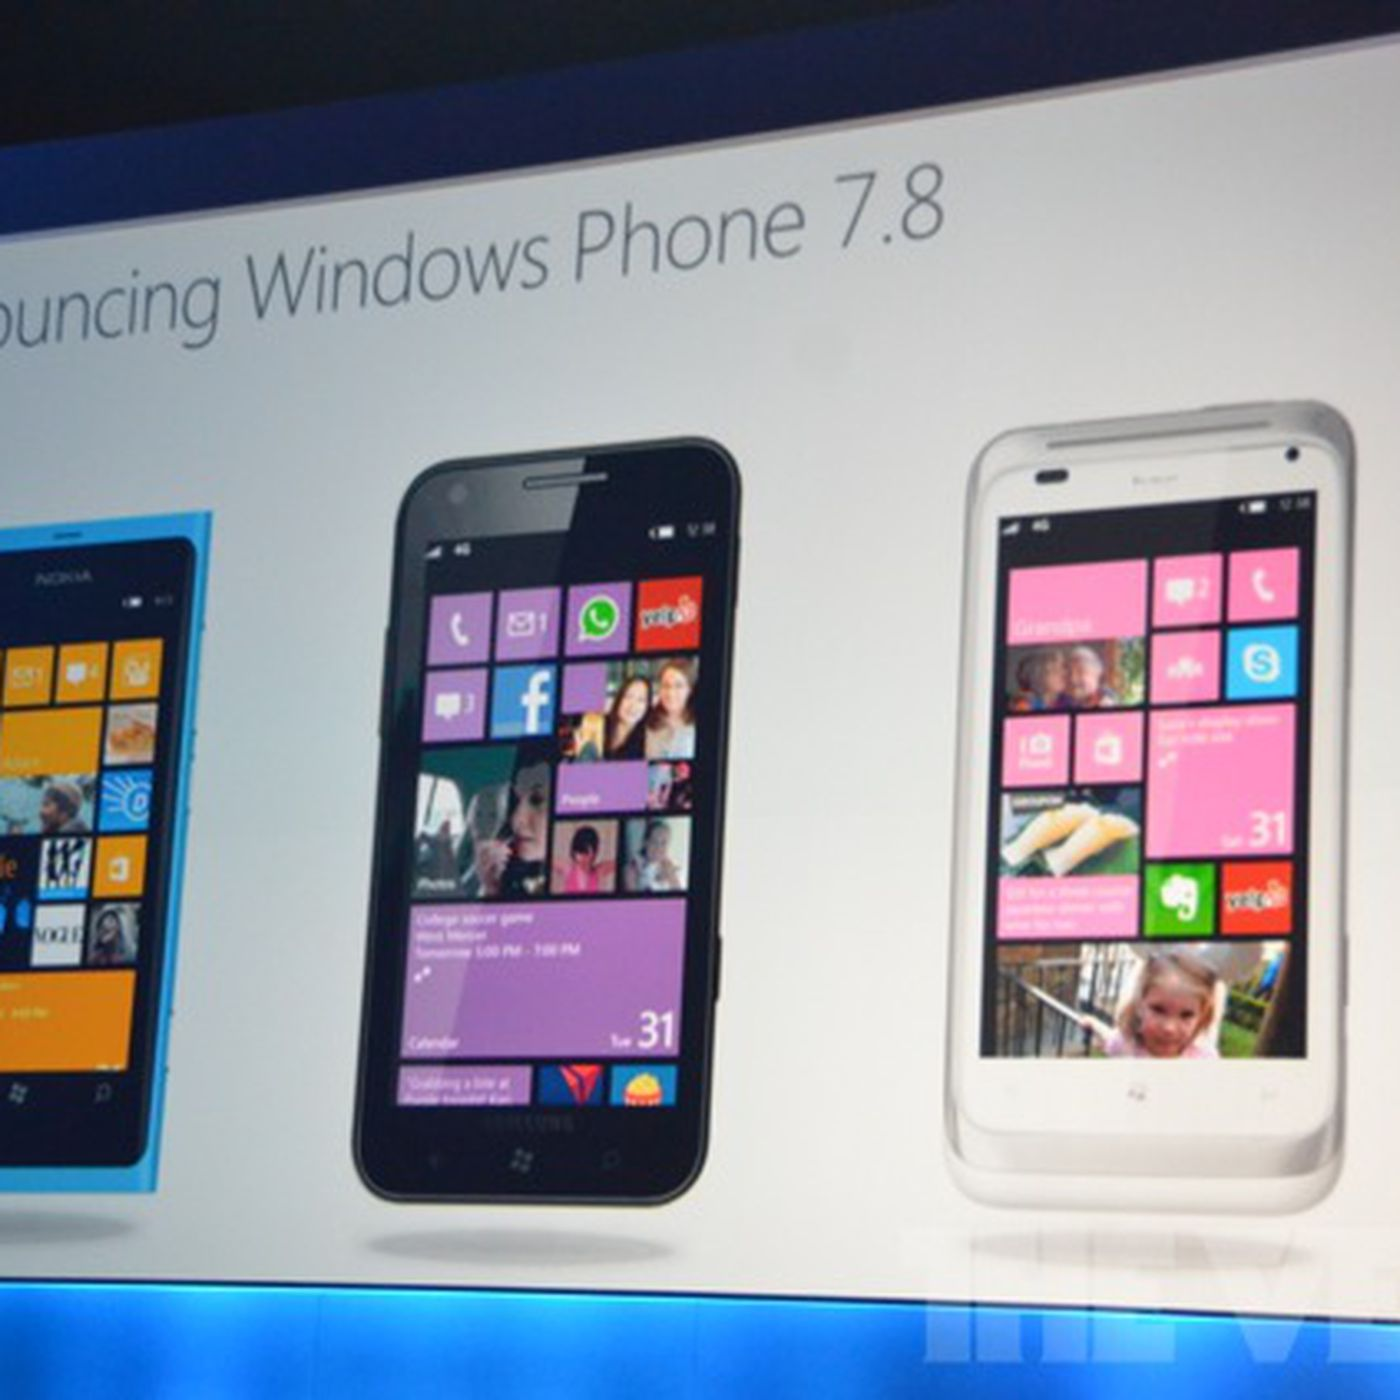 Microsoft No Upgrades To Windows Phone 8 But Some Features